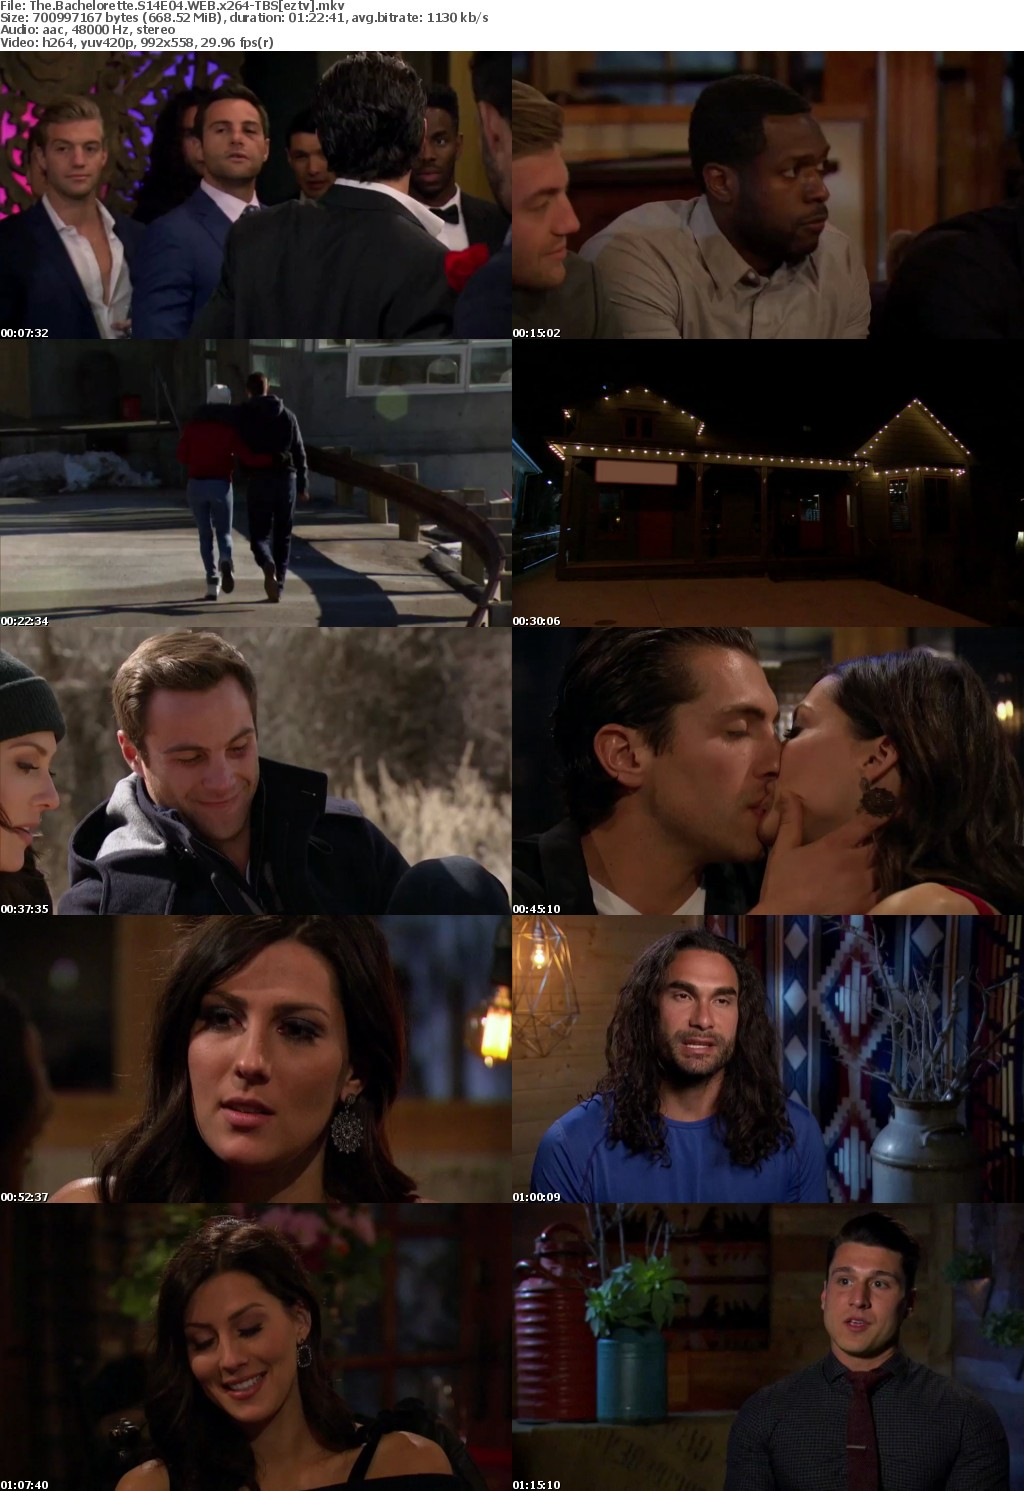 The Bachelorette S14E04 WEB x264-TBS